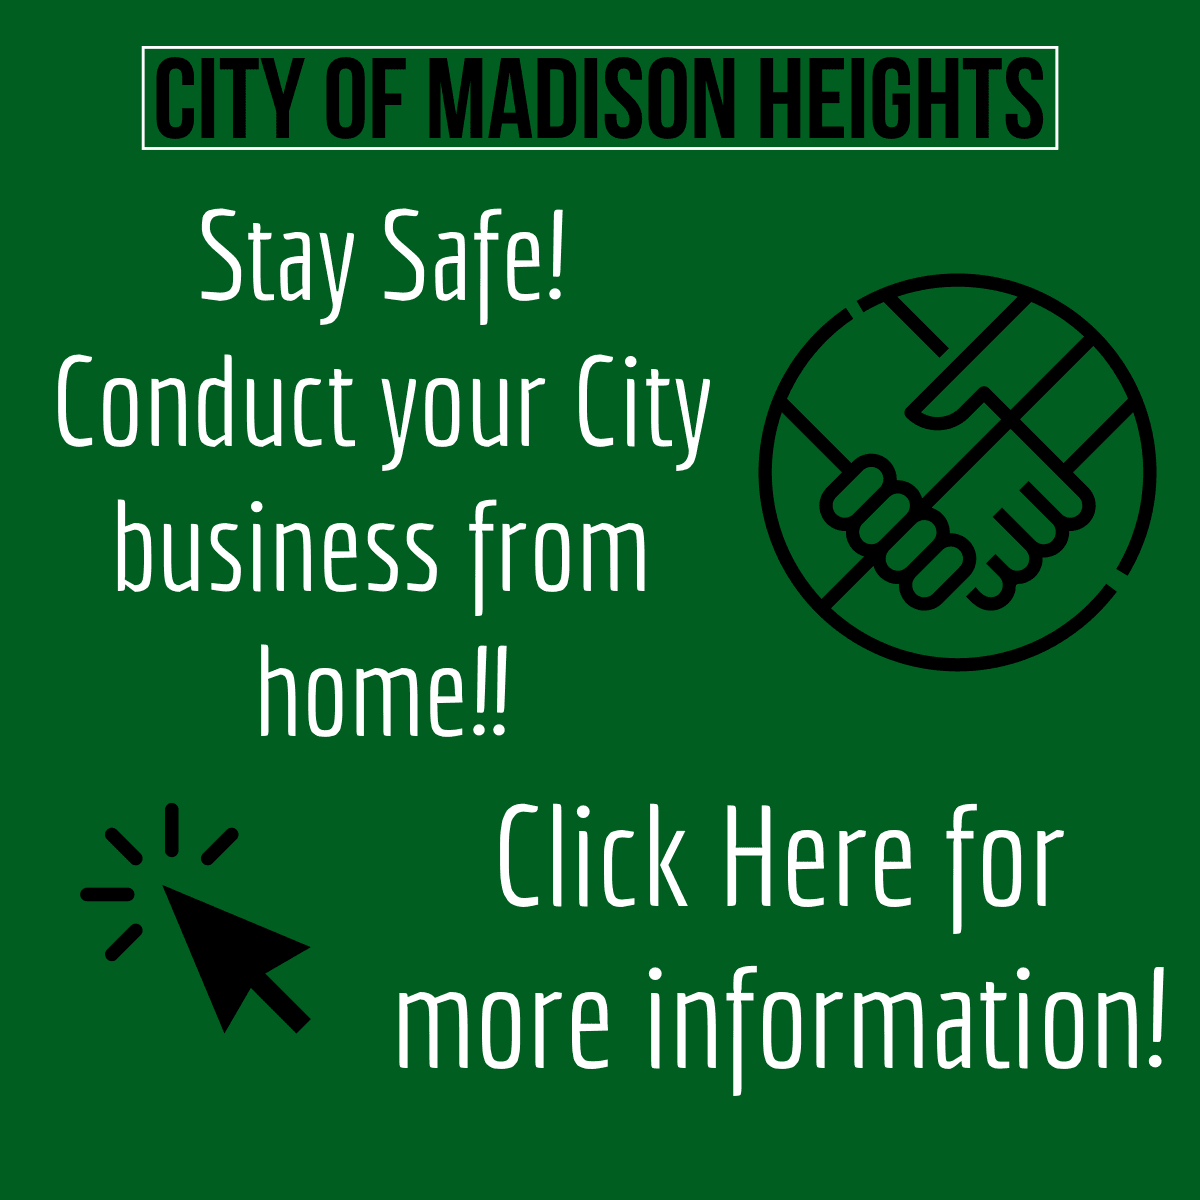 Stay Safe! Conduct City business from home!